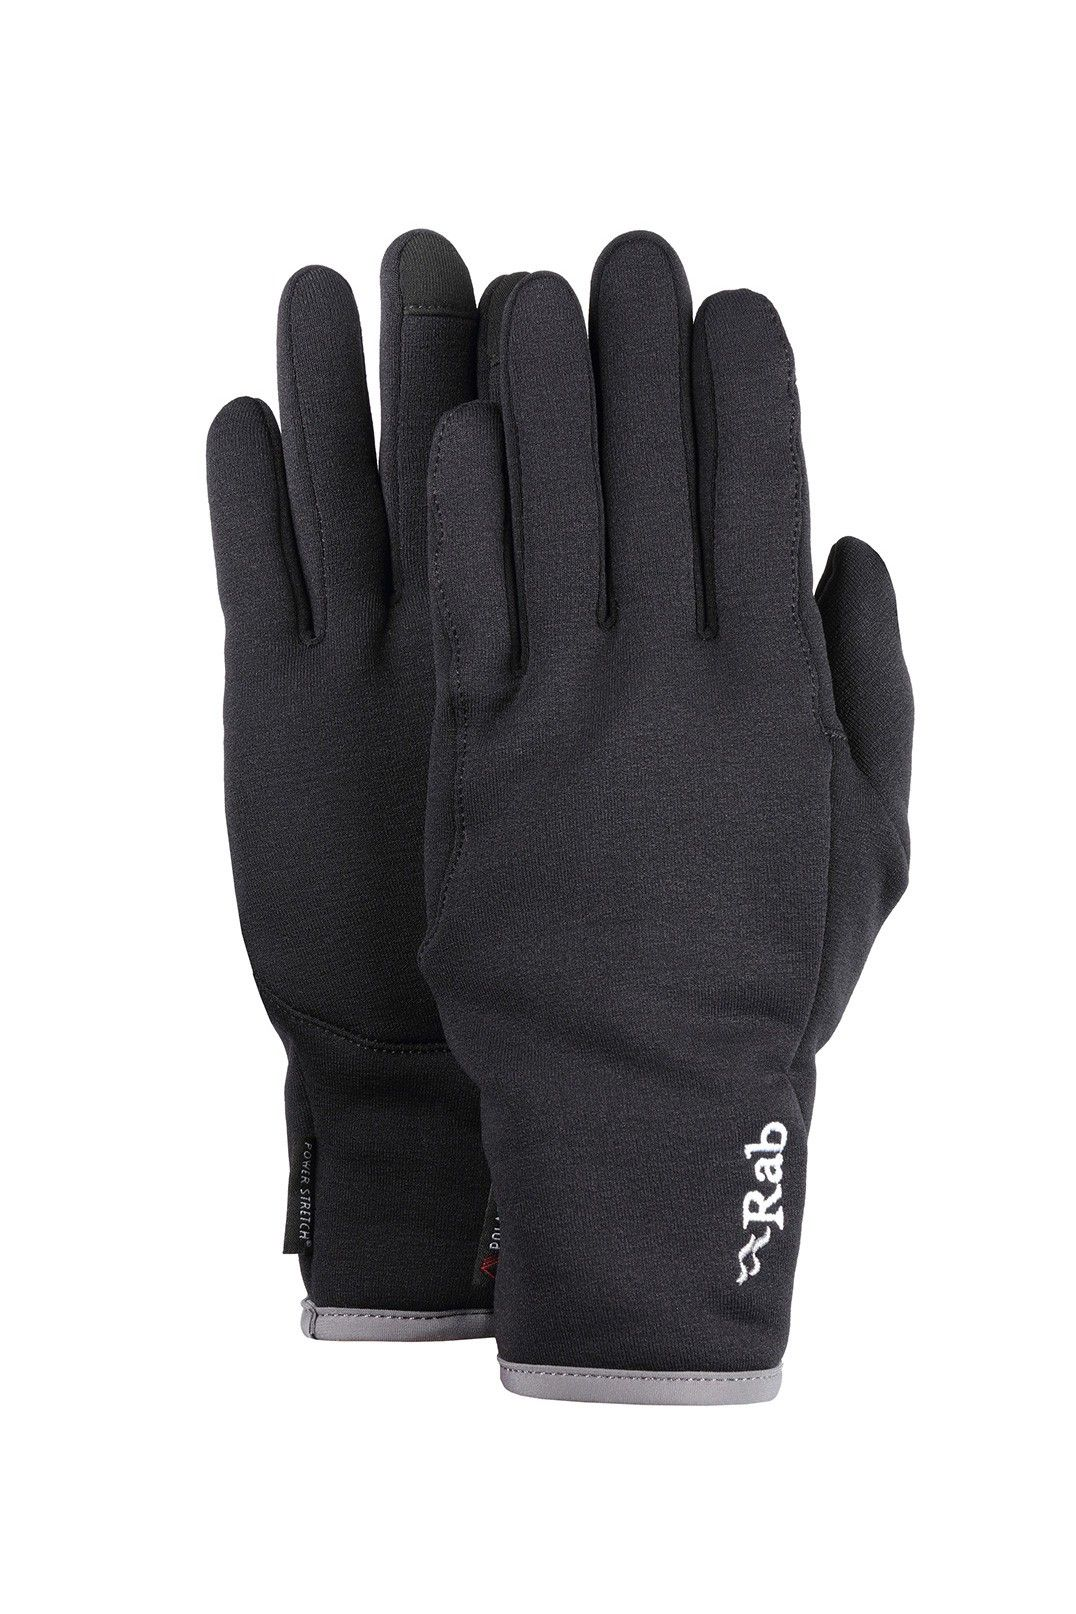 Power Stretch Pro Contact Glove - Accessories